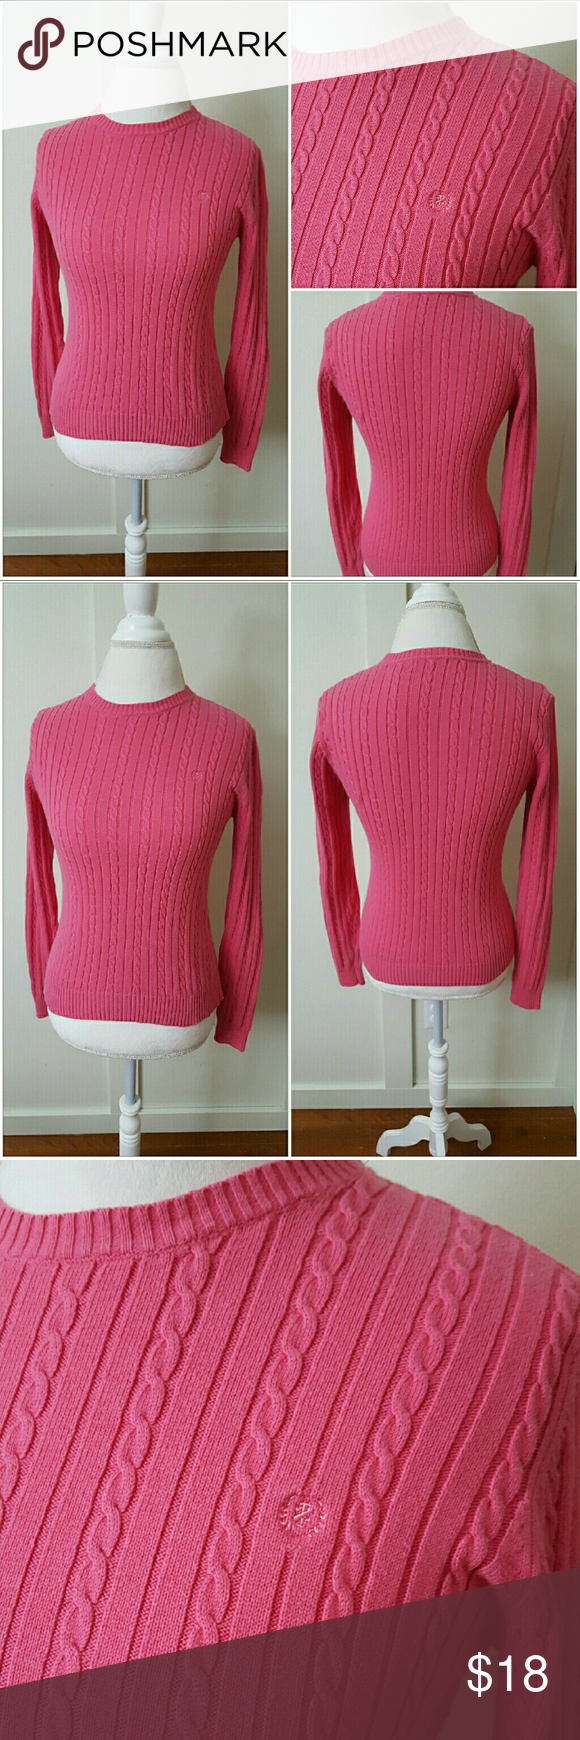 Izod Medium Pink Retro Cable Knit Sweater | Pink, Cable knit and Cable